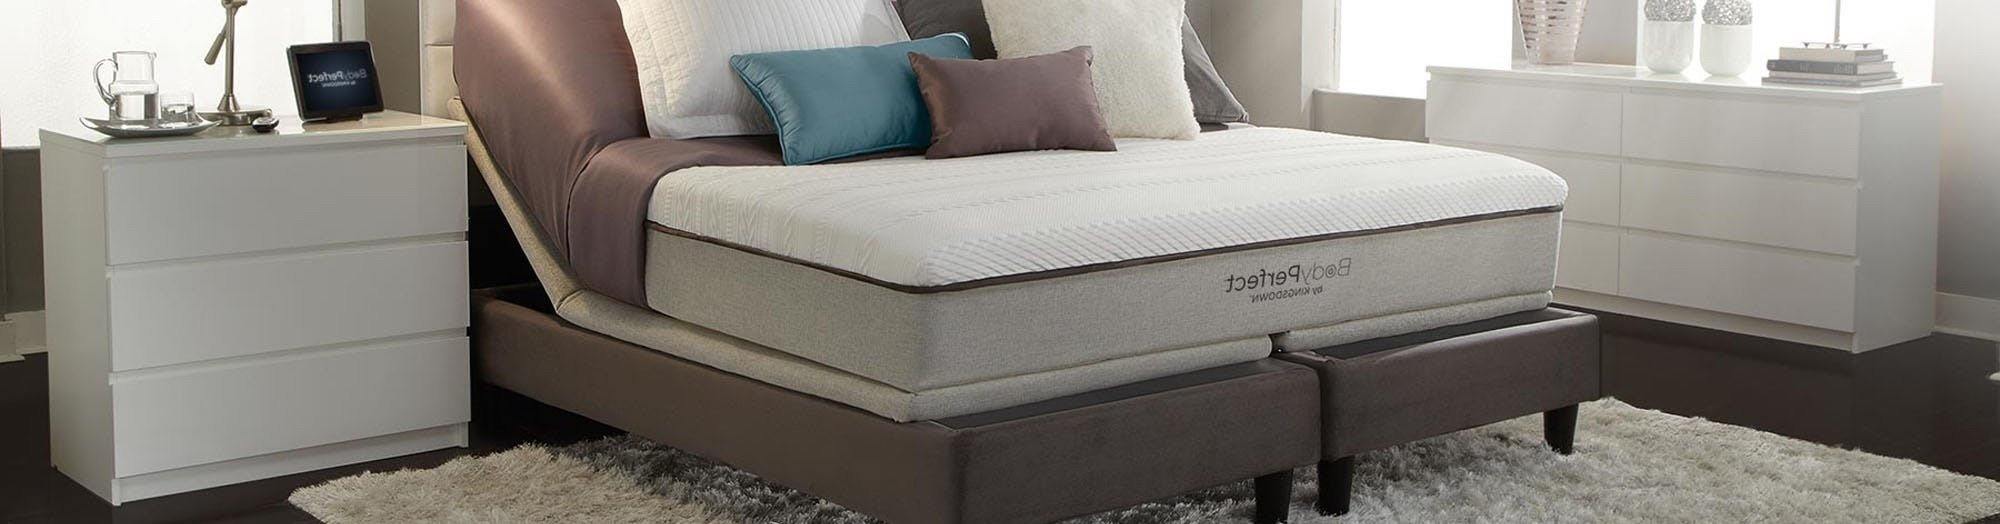 Boxspringbett Design